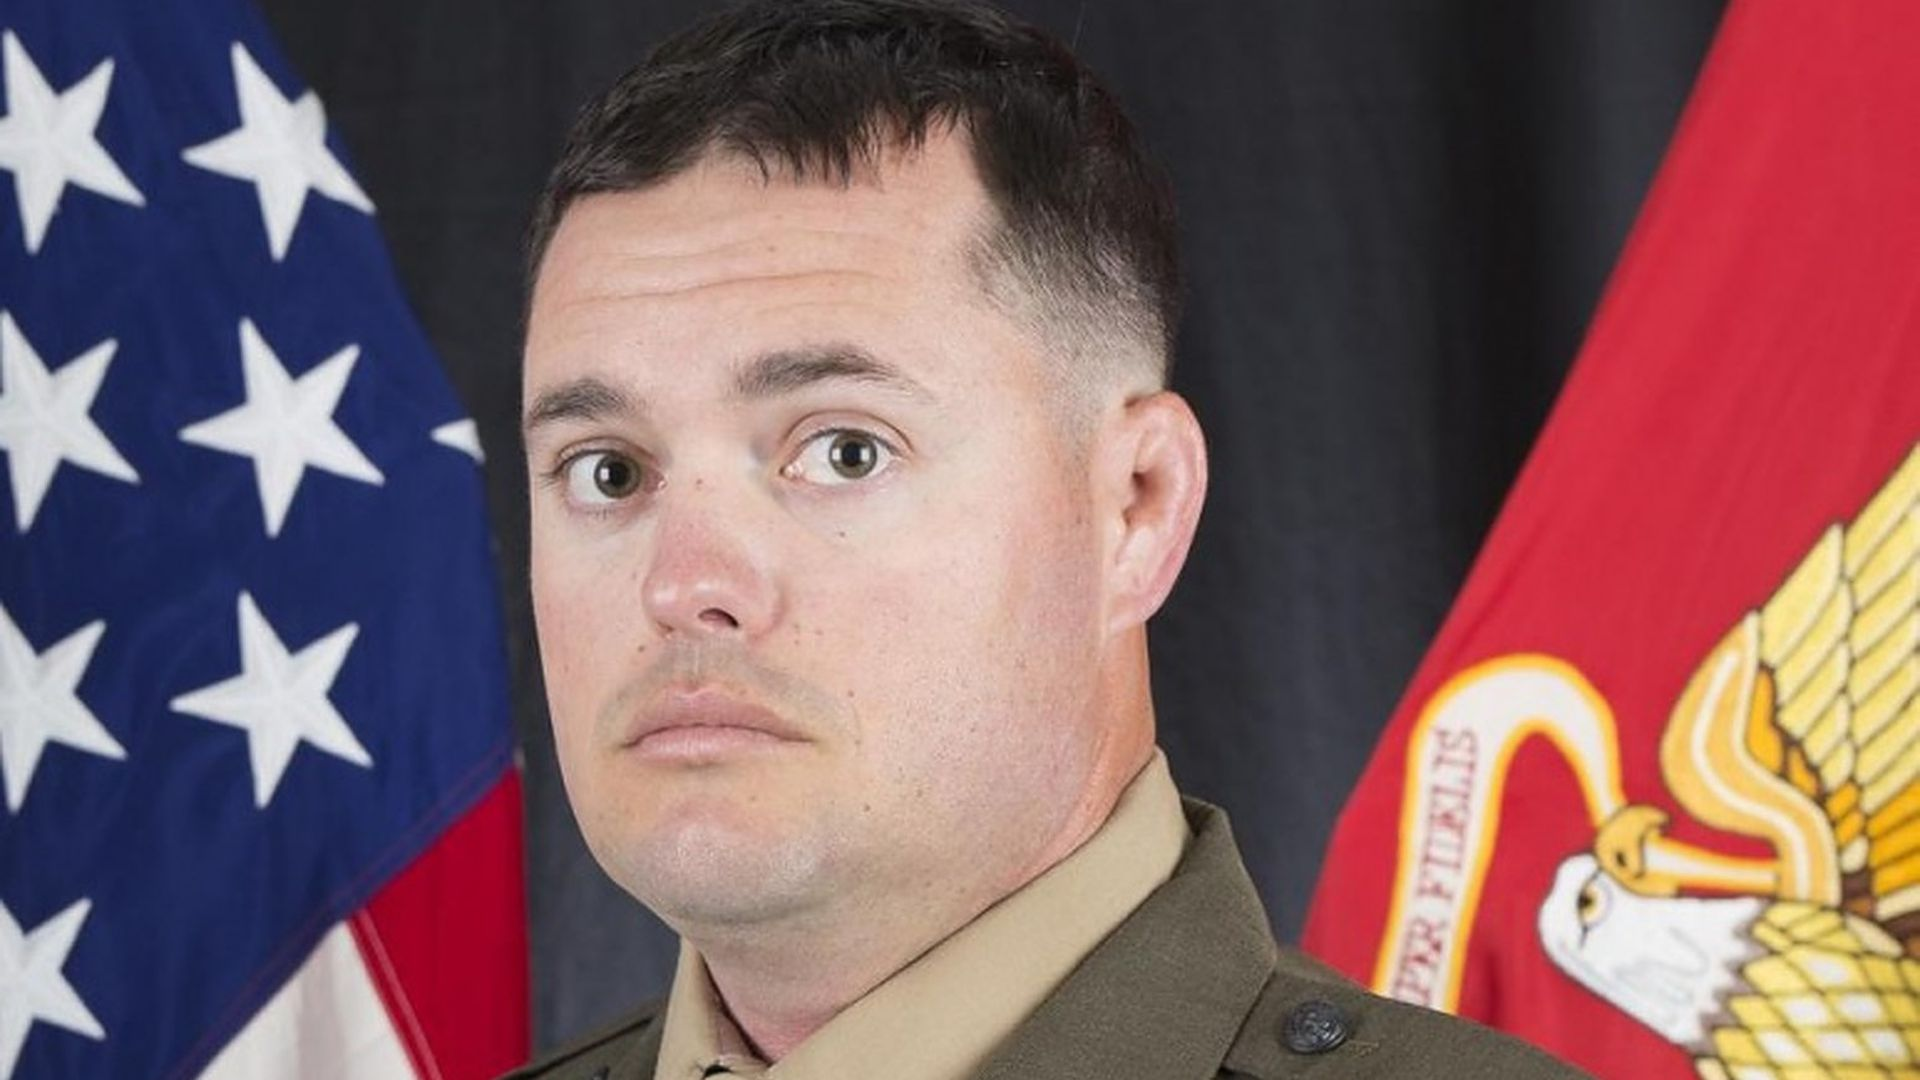 Gunnery Sergeant Scott A. Koppenhafer, 35, a critical skills operator with 2nd Marine Raider Battalion, suffered fatal wounds during combat operations while supporting Iraqi Security Forces.